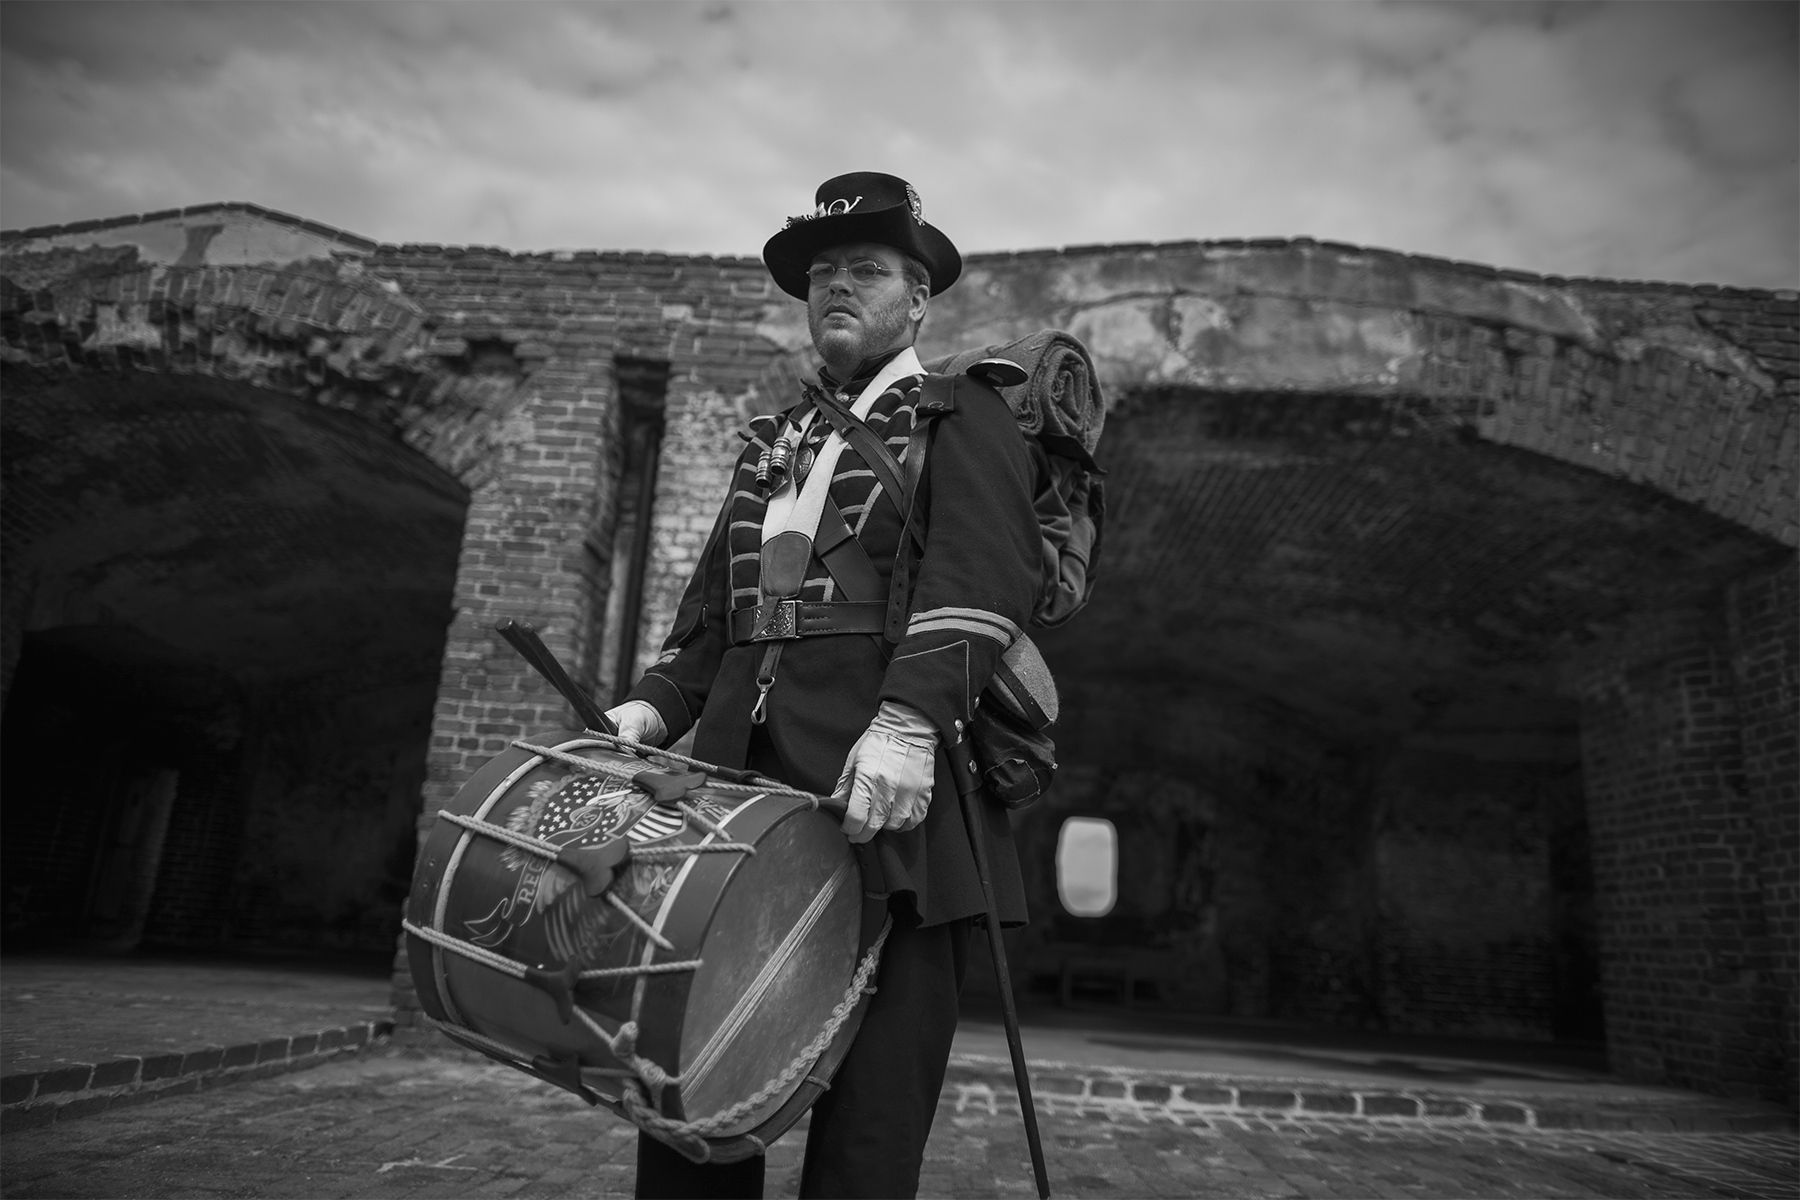 Union soldier reenactor Kelly Ford of Portland, Oregon, prepares to play a drum during a re-enactment ceremony at Fort Sumter National Monument in Charleston, South Carolina April 14, 2015. Civil War re-enactors raised an American flag at the Fort Sumter National Monument during a ceremony on Tuesday commemorating the 150th anniversary of the symbolic end to the four-year conflict in the place where it began.  REUTERS/Randall Hill